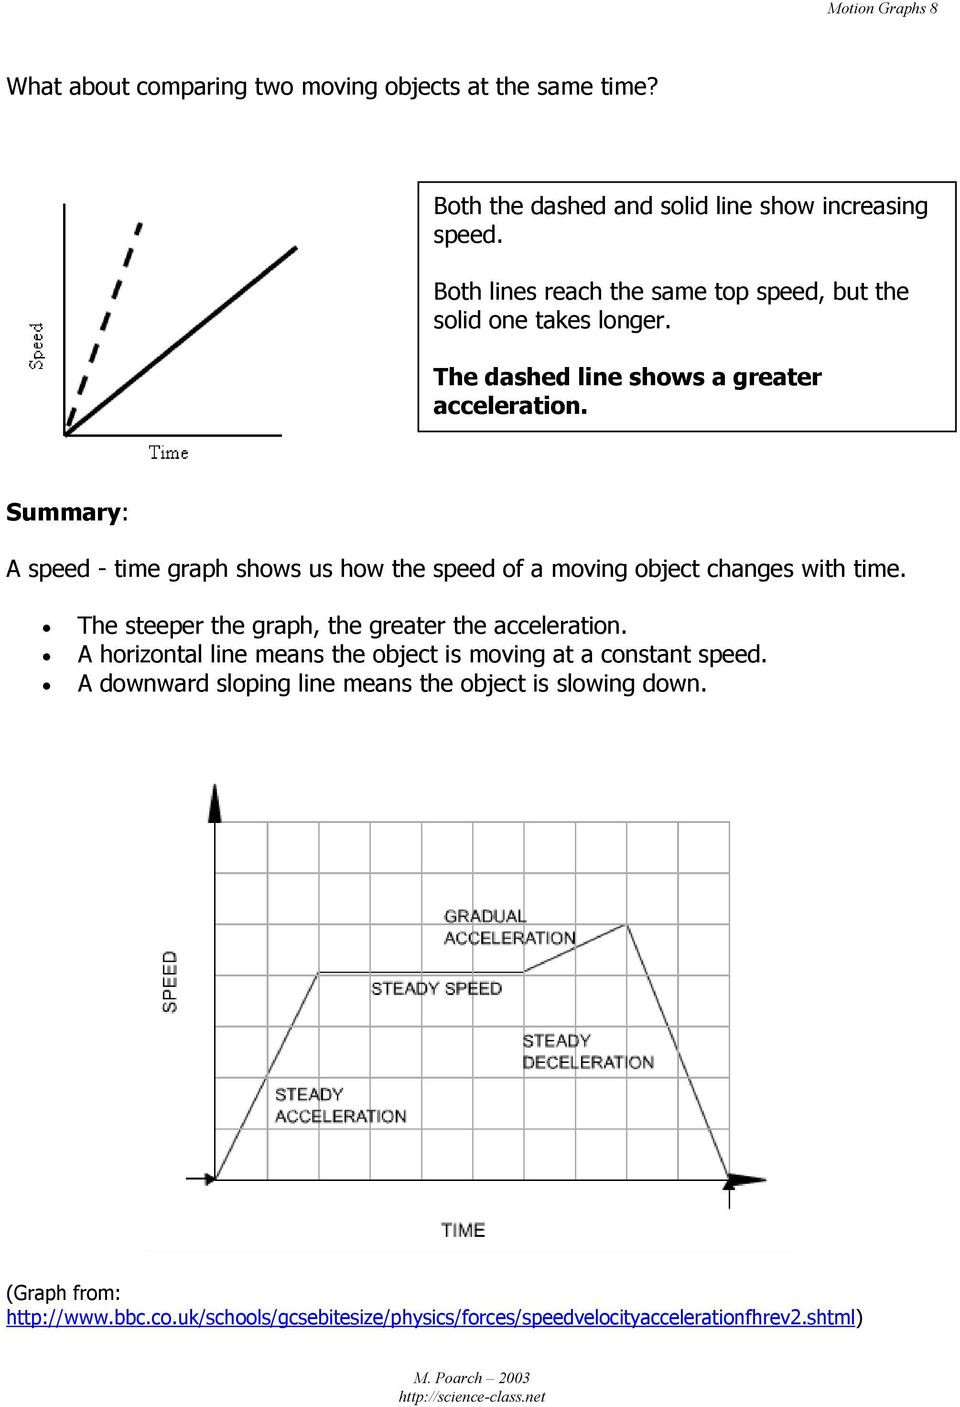 Motion Graph Analysis Worksheet Motion Graphs Plotting Distance Against Time Can Tell You A